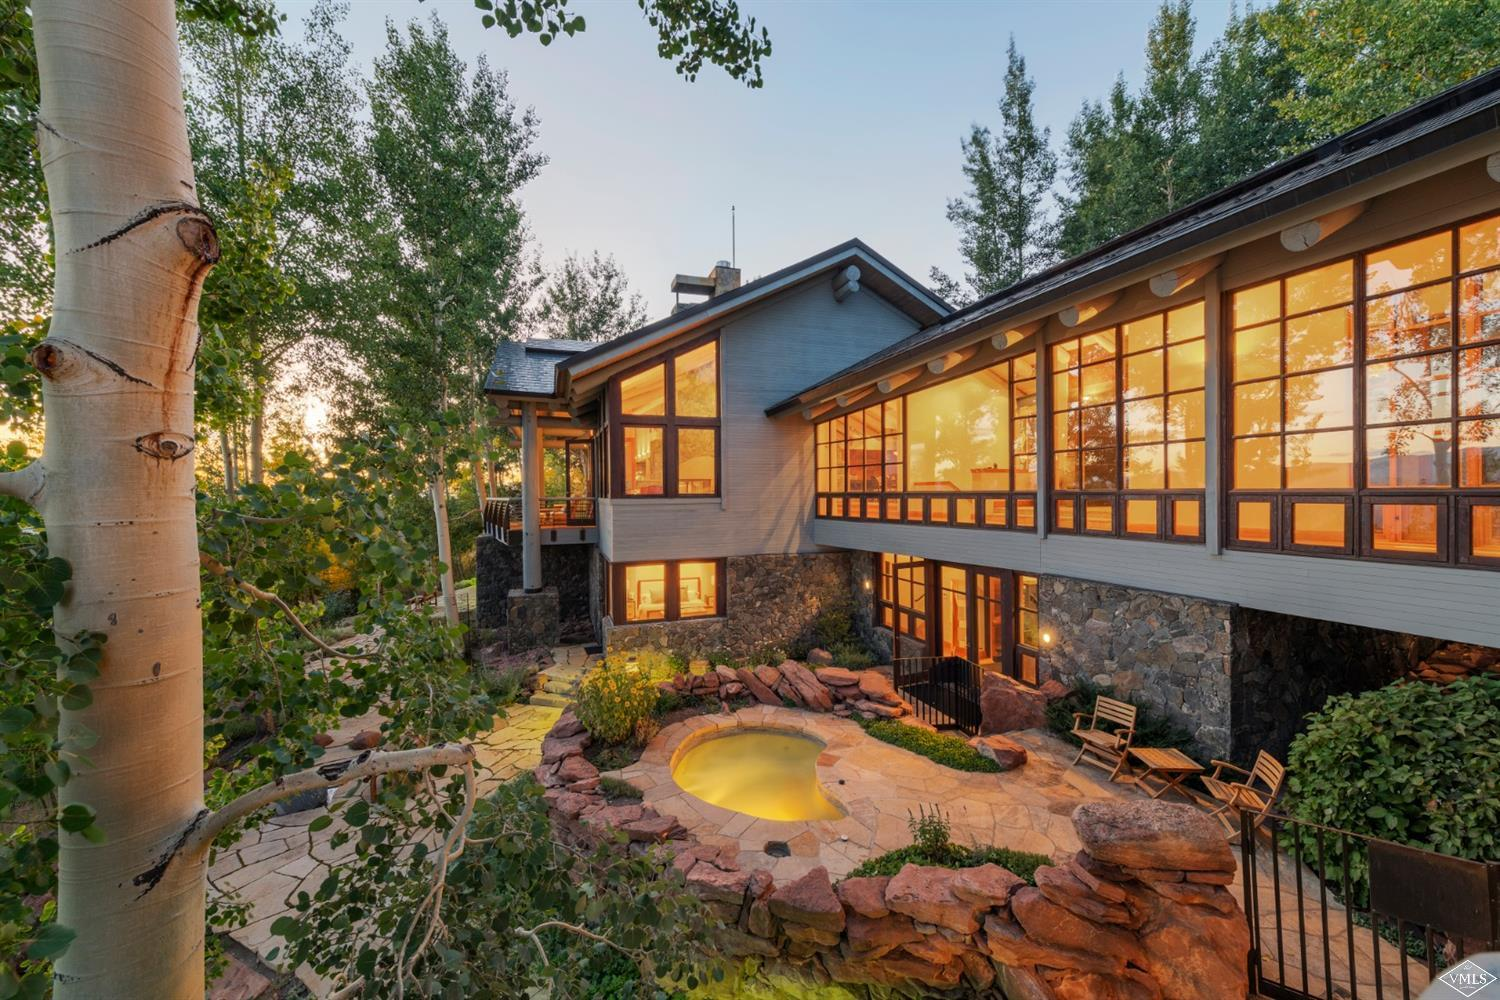 126 Goldenrod re-imagined. This estate home has a new, elegant look with a mountain modern design. You will love the stunning 270-degree views of Vail, Beaver Creek, Bachelor Gulch as well as the Sawatch Mountain Range. Bonus! Sellers are including their Beaver Creek Village Parking Space and Ski Locker in the sale. mls.126Goldenrod.com; Over 3 Car Garage